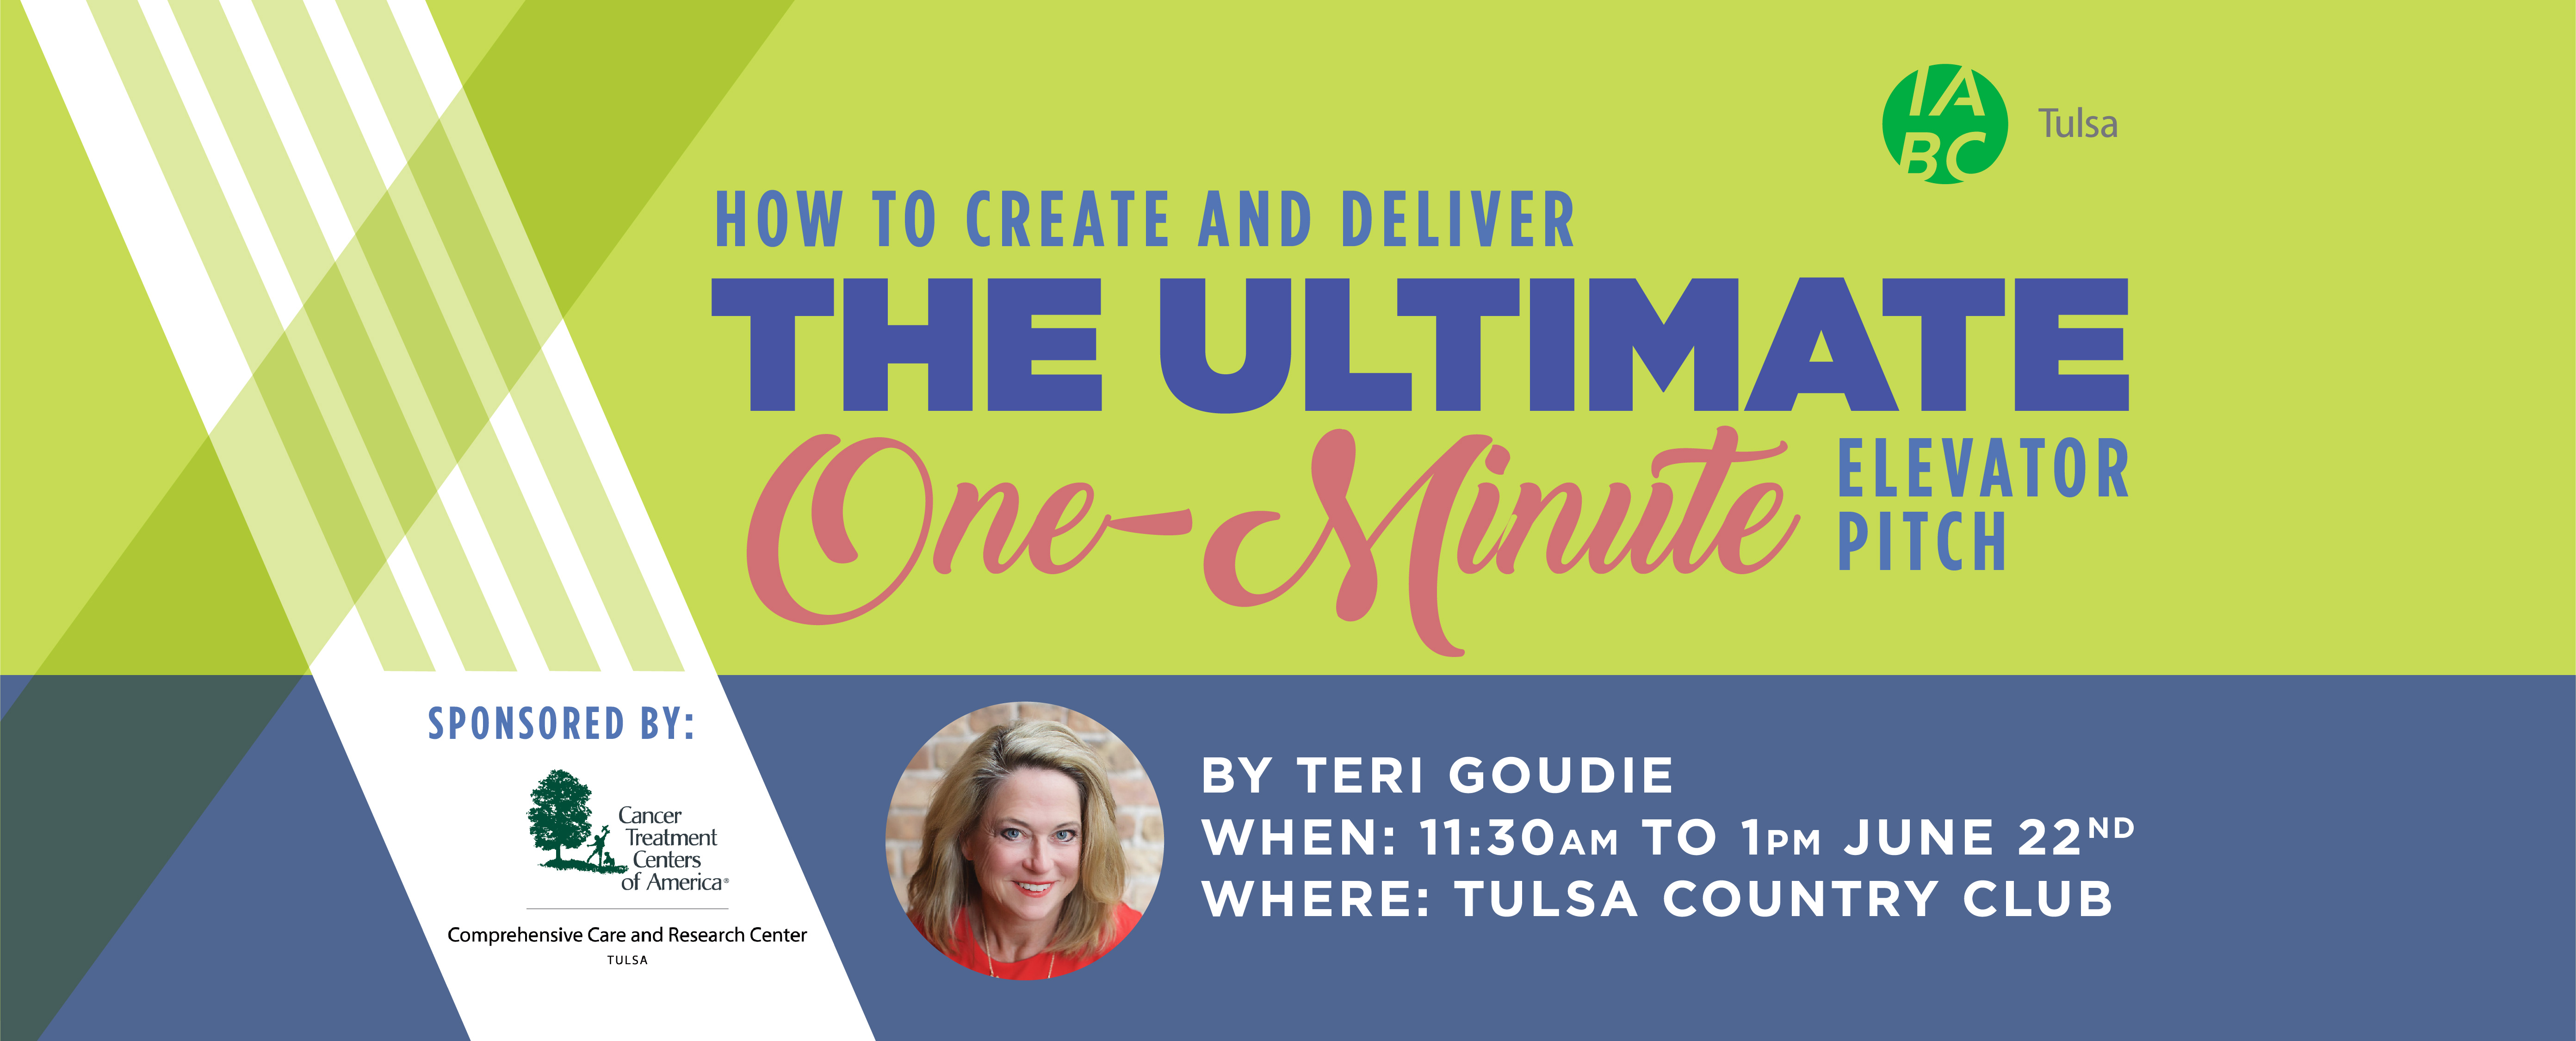 How to Create and Deliver the Ultimate One-Minute Elevator Pitch